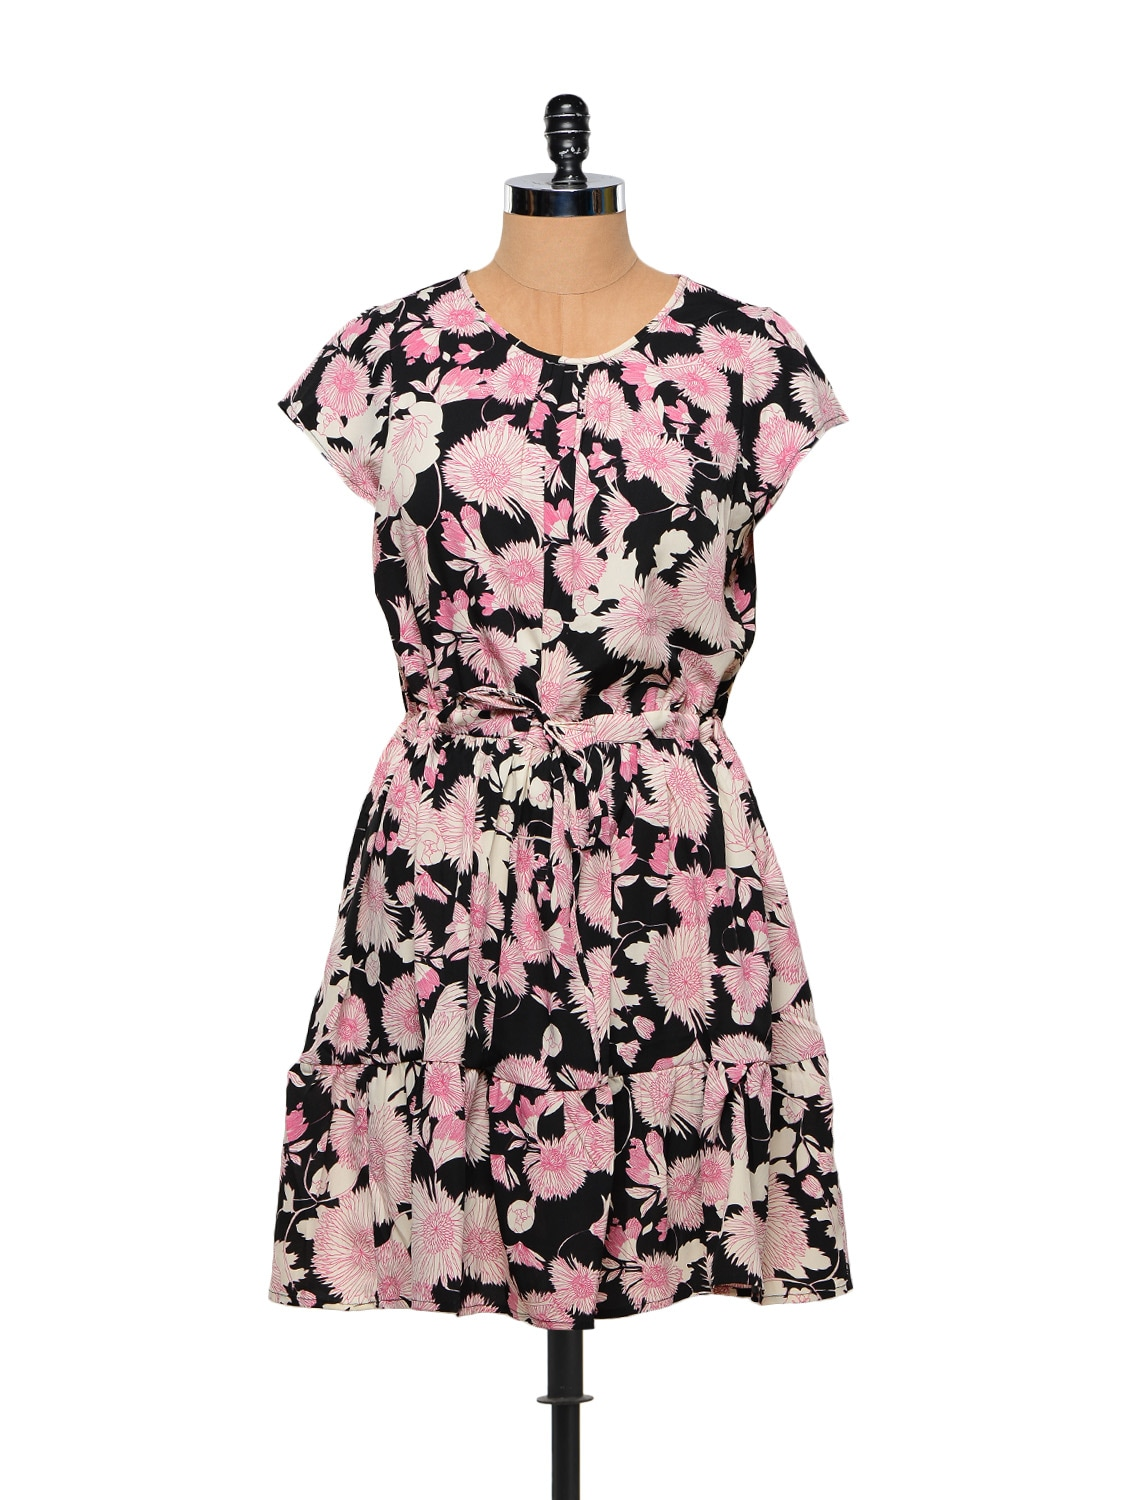 Floral Print Polyester Spring Dress - Stylechiks